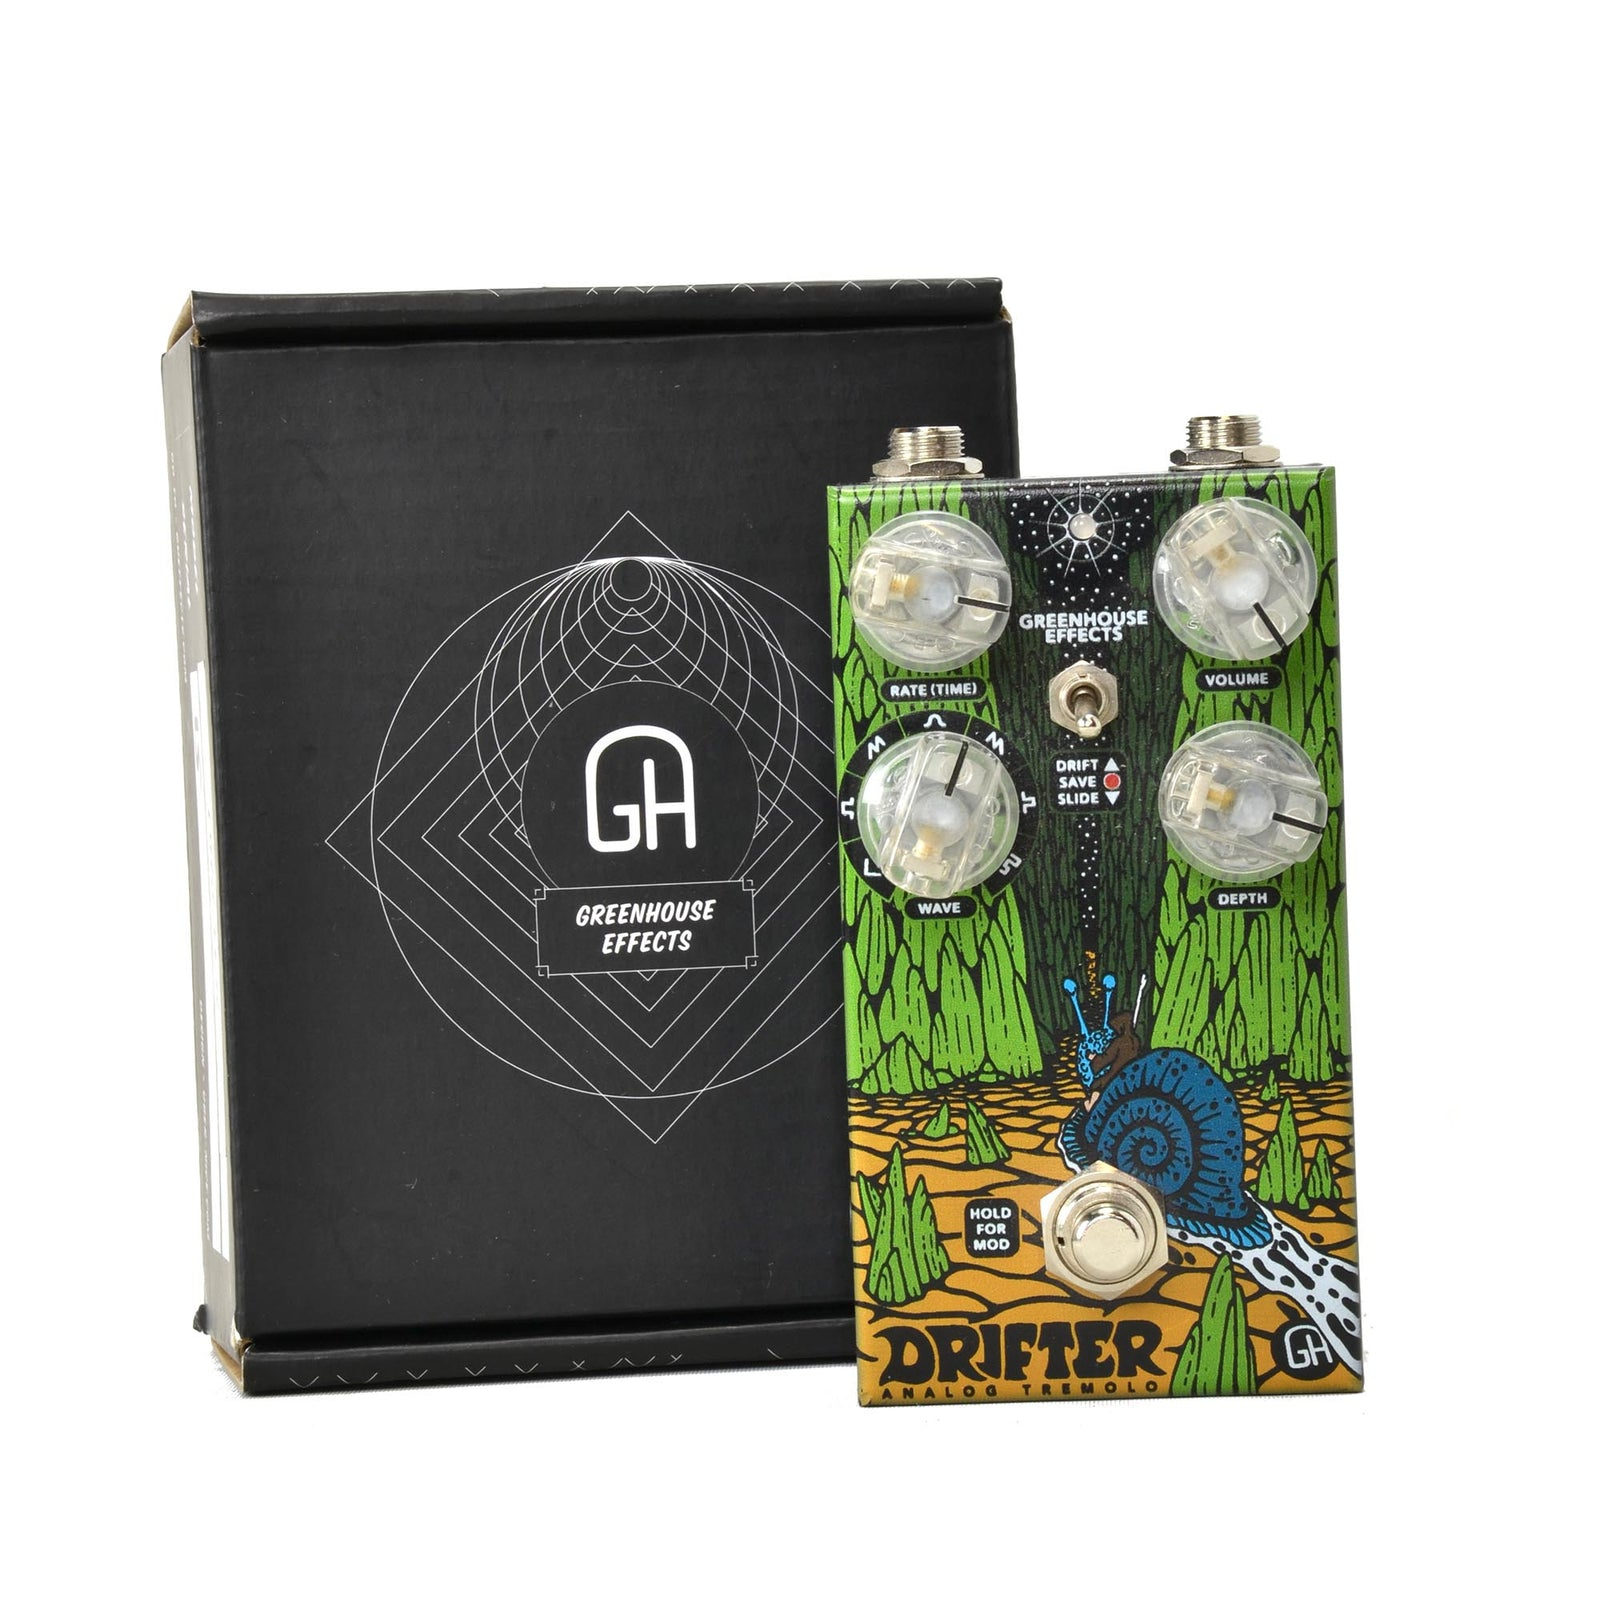 Greenhouse Effects Drifter Analog Tremolo - Used